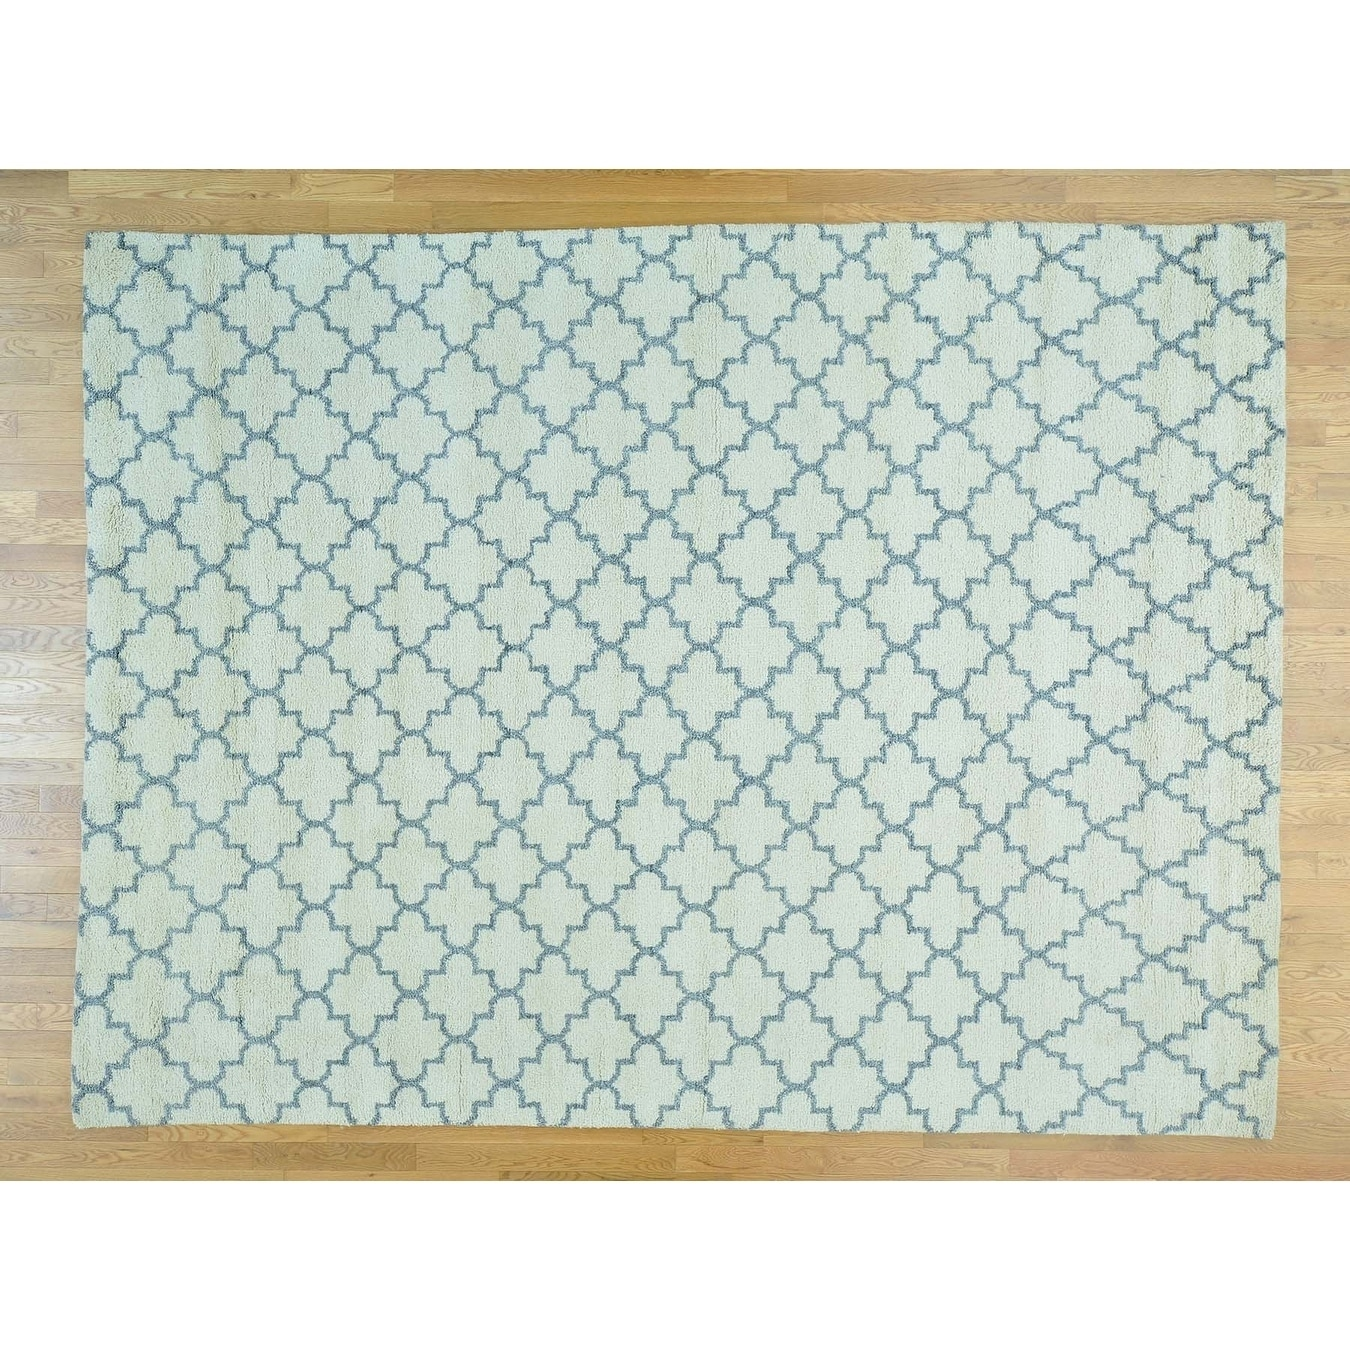 Hand Knotted Ivory Modern & Contemporary with Wool Oriental Rug - 9' x 12'1